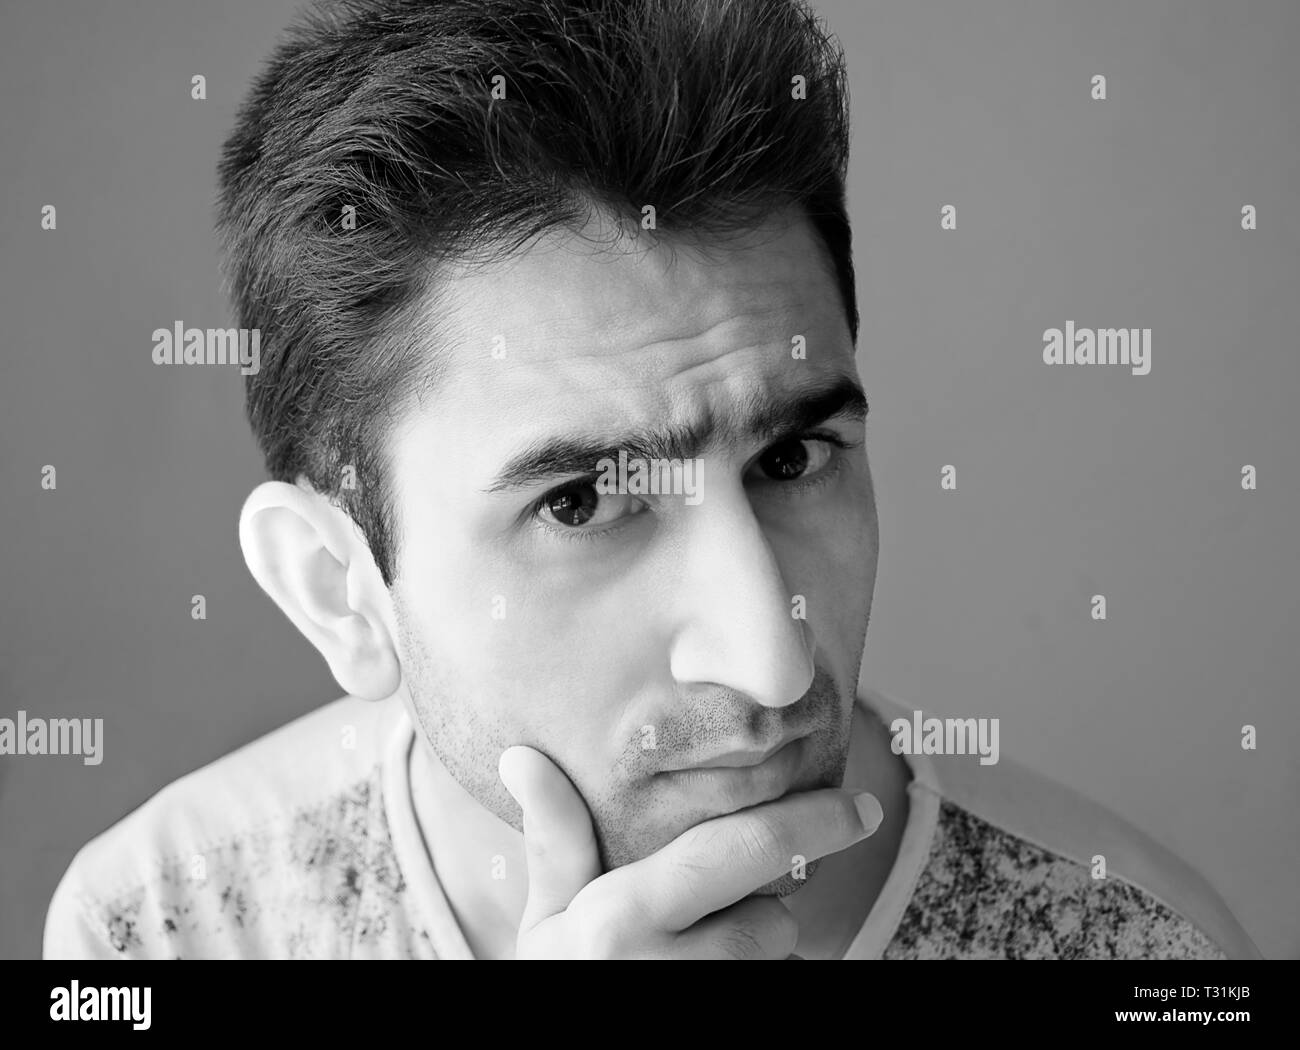 Portrait of young man thinking about an idea - Stock Image